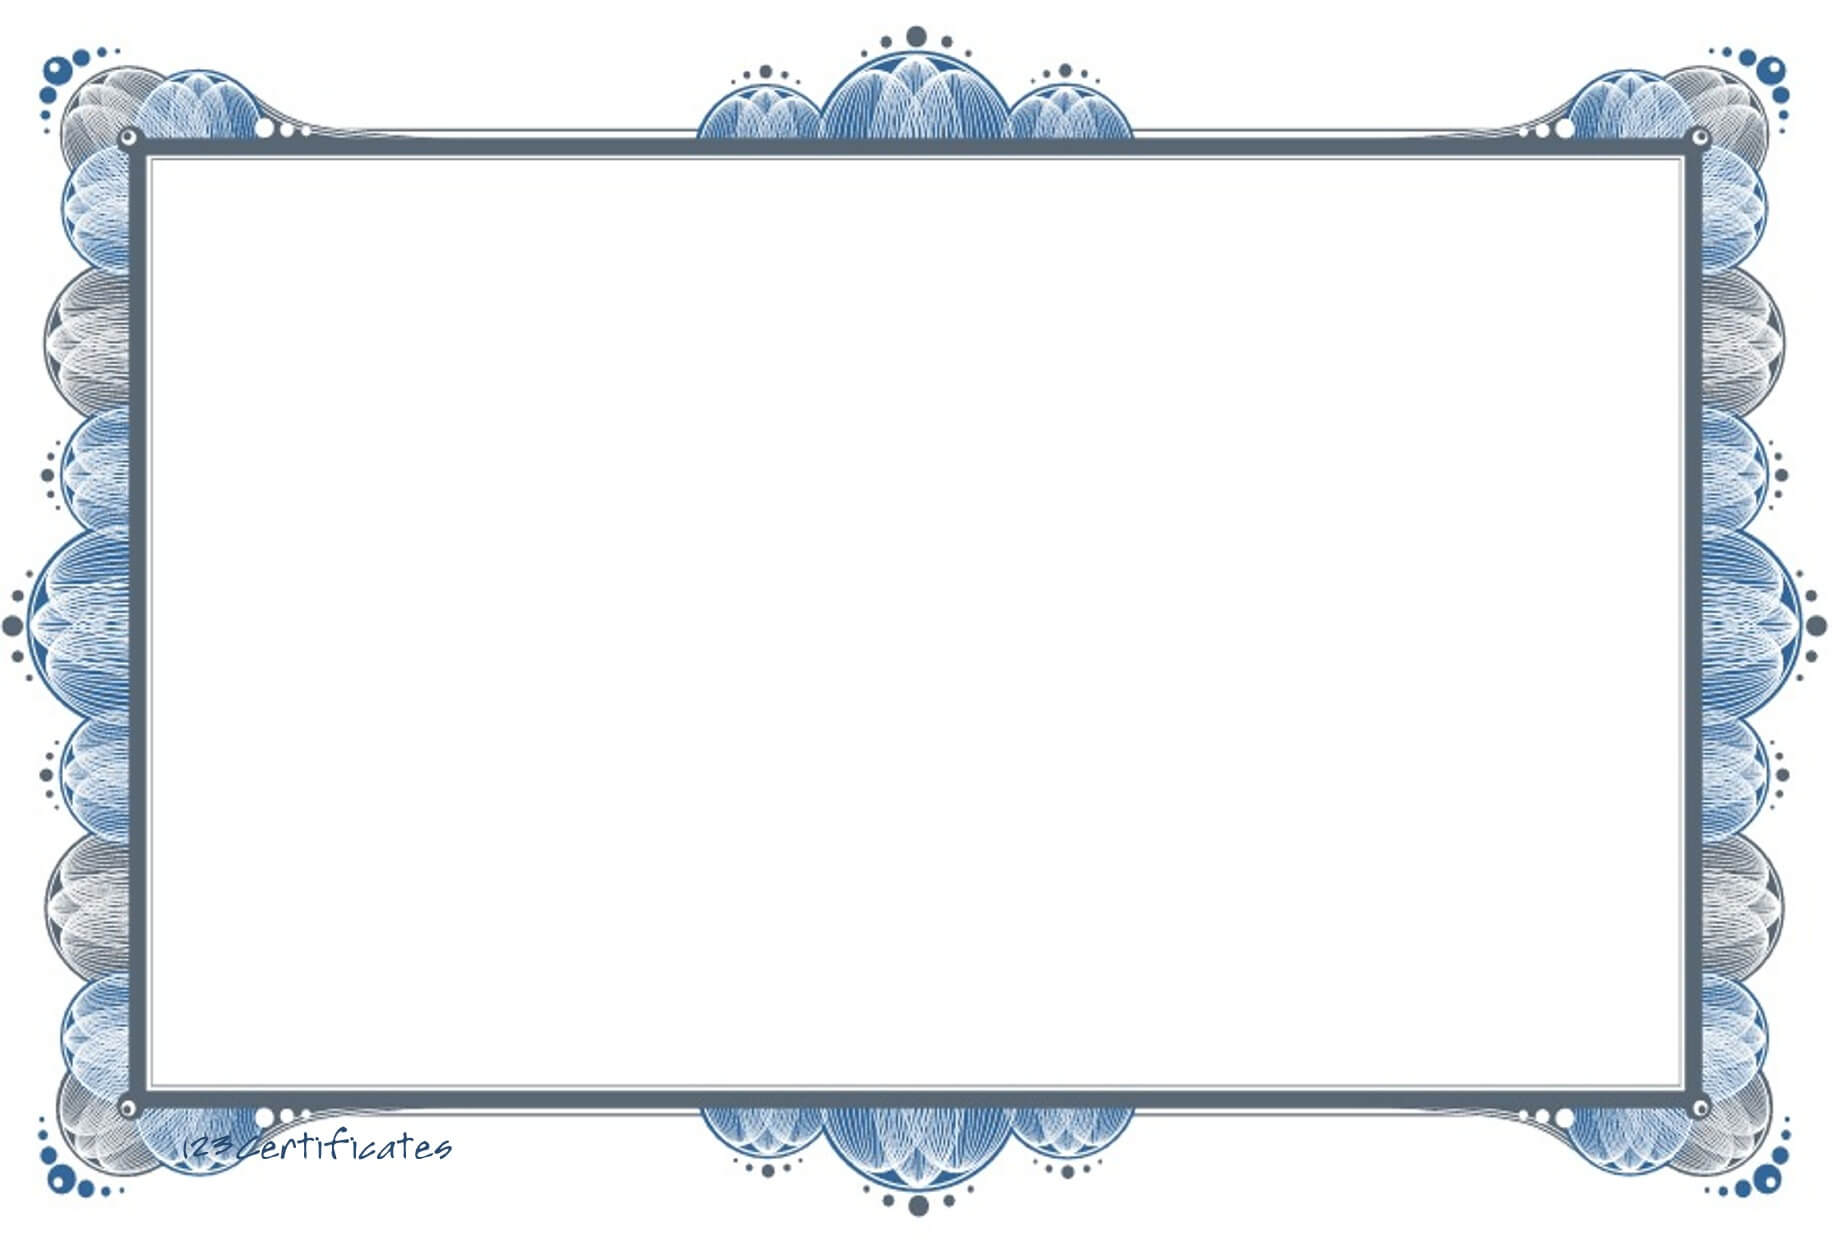 Free Certificate Borders To Download Intended For Landscape Certificate Templates